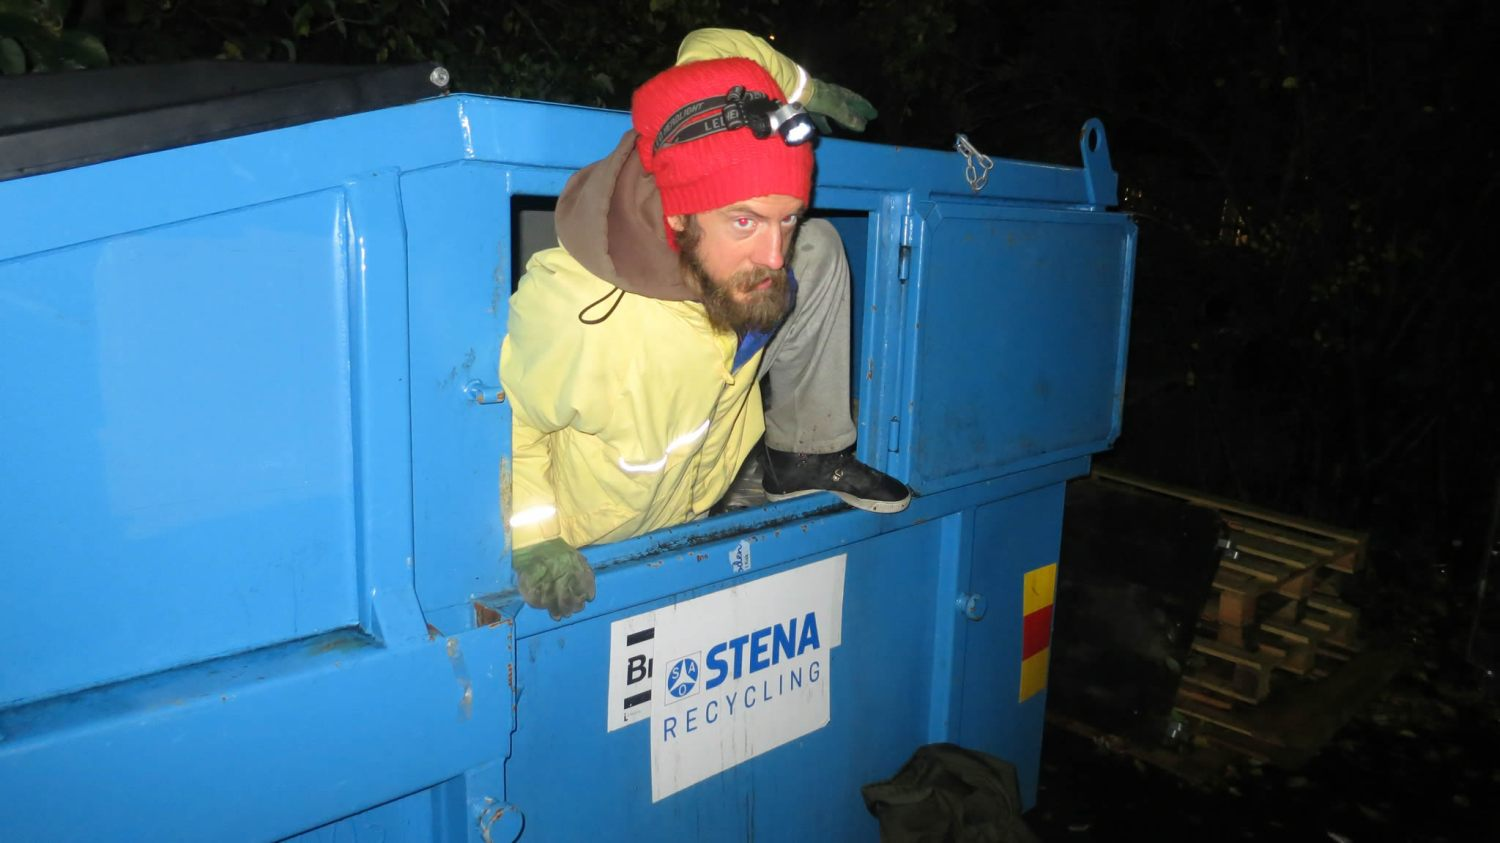 dumpsterdiving.jpg?fit=1500,843&ssl=1